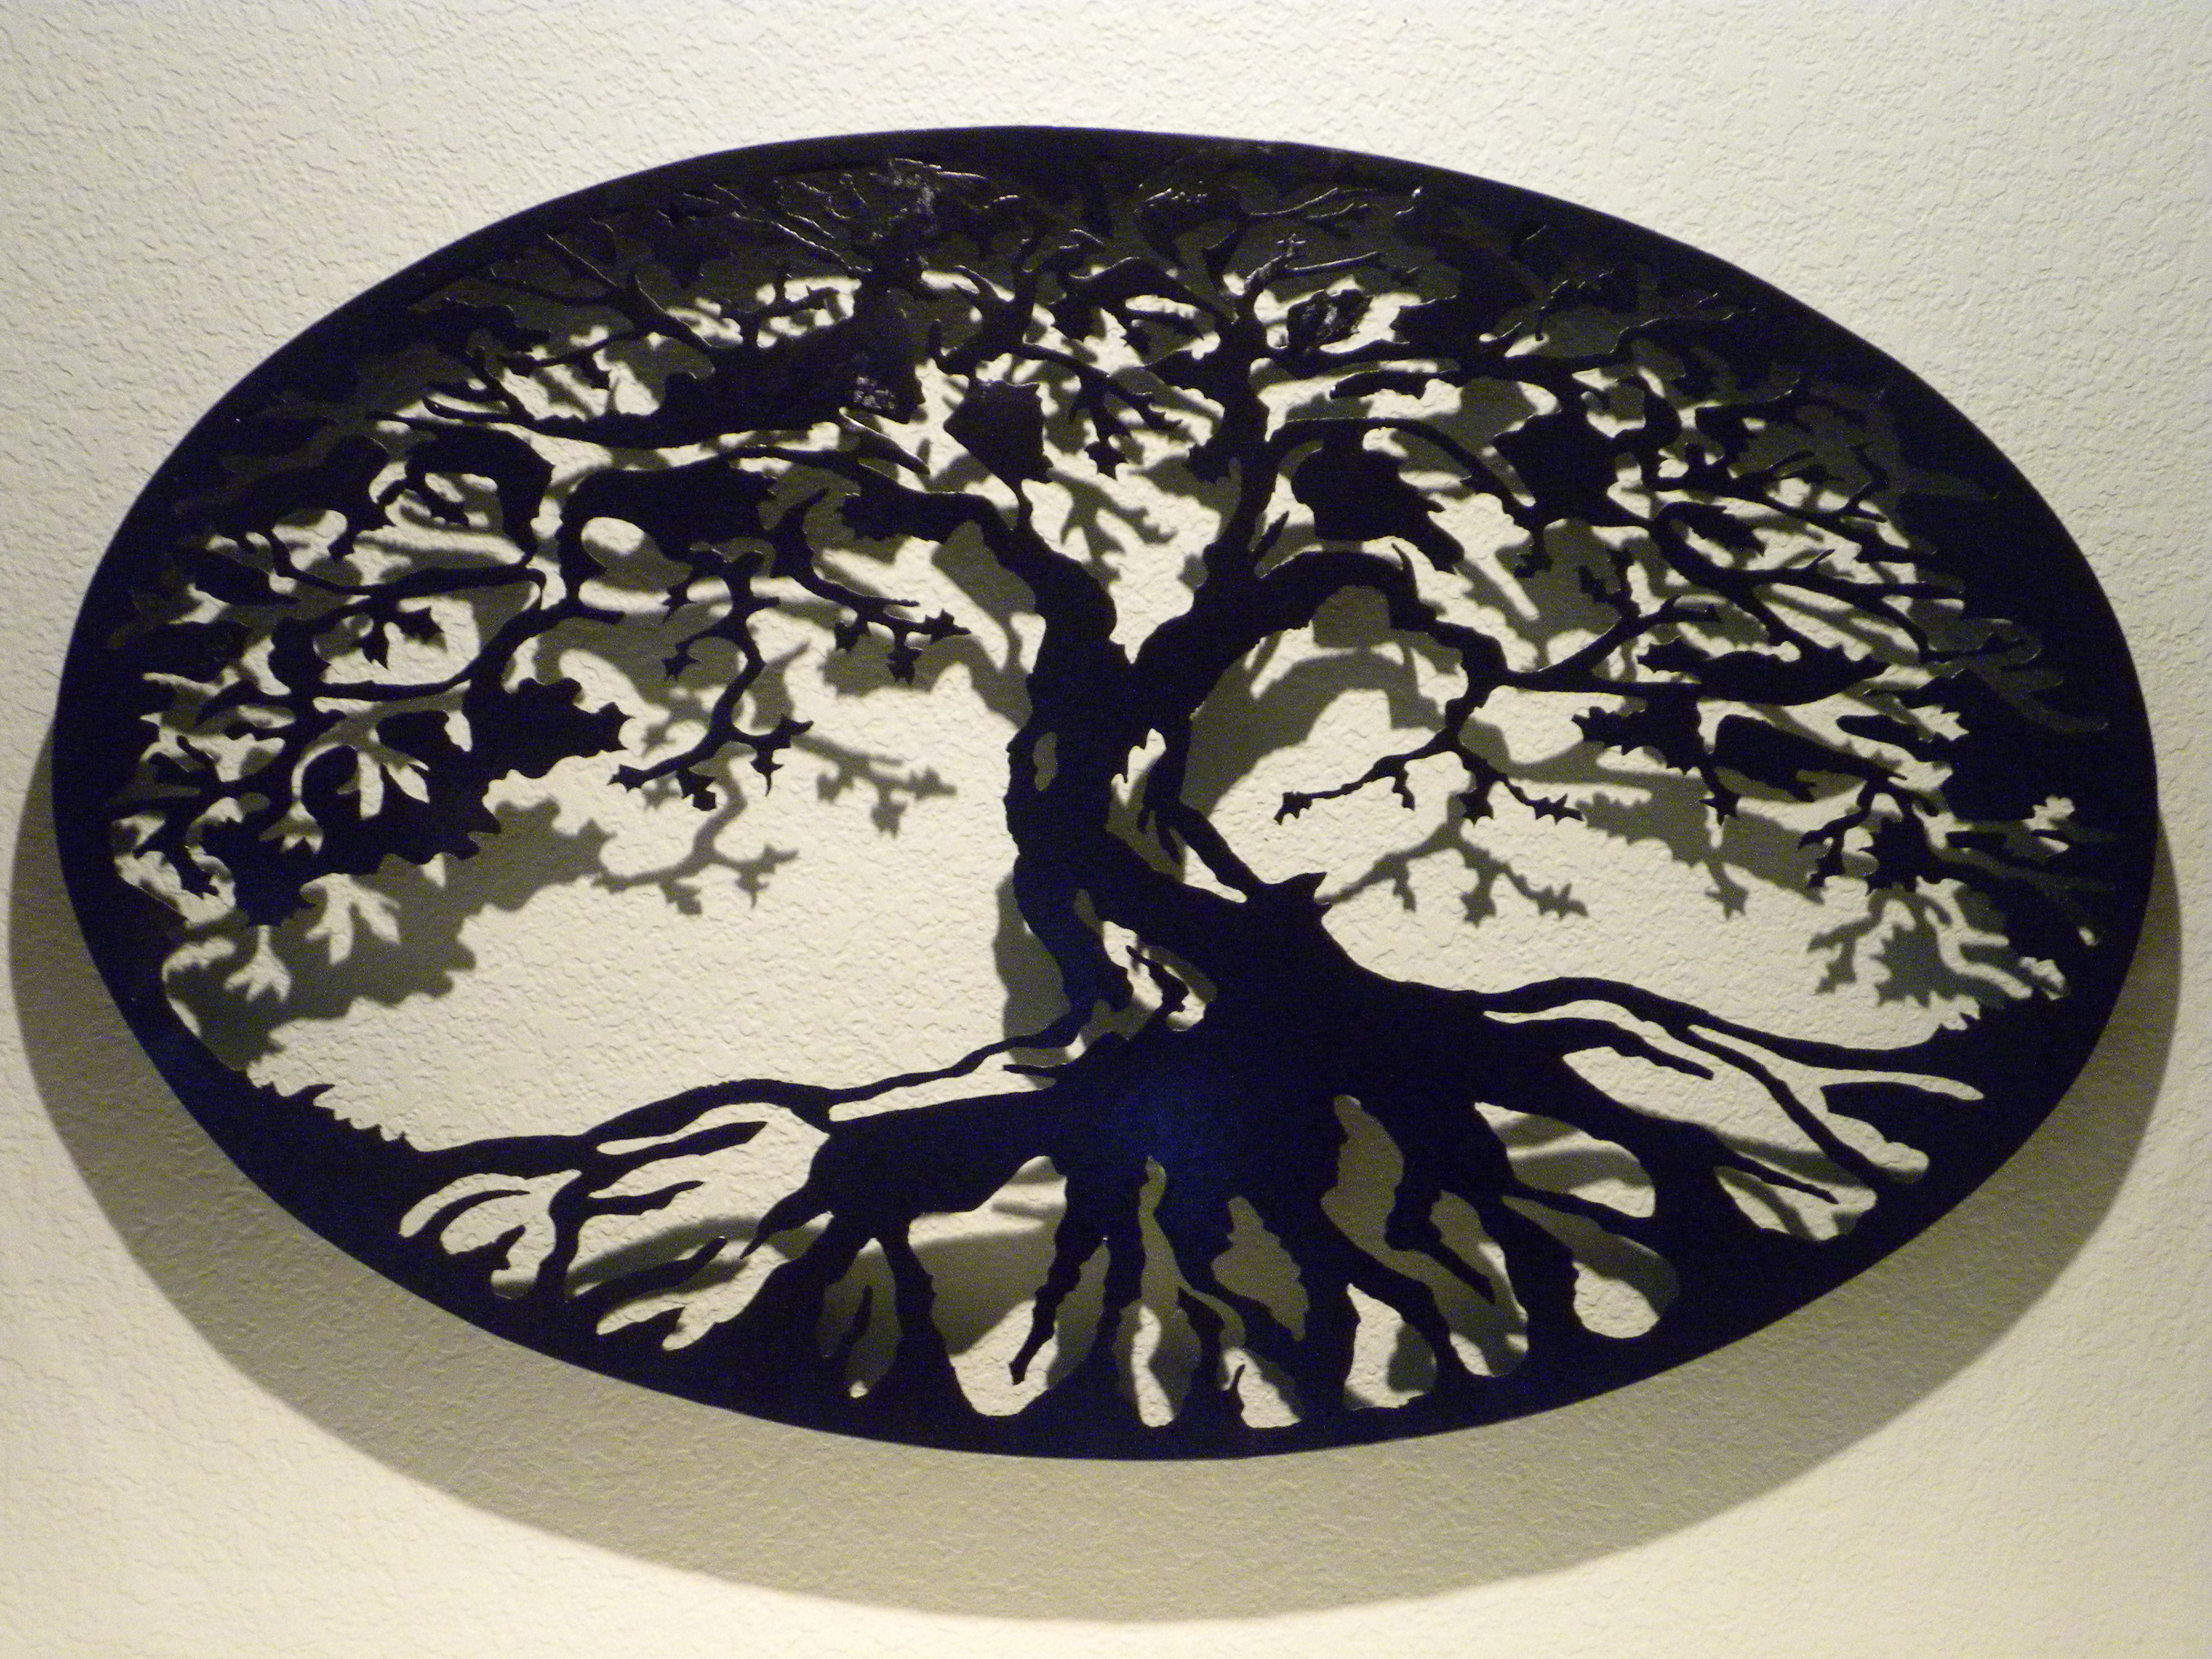 Buy A Custom Oval Tree Of Life Metal Wall Art, Made To Order From For Well Known Tree Of Life Wall Decor (View 2 of 20)